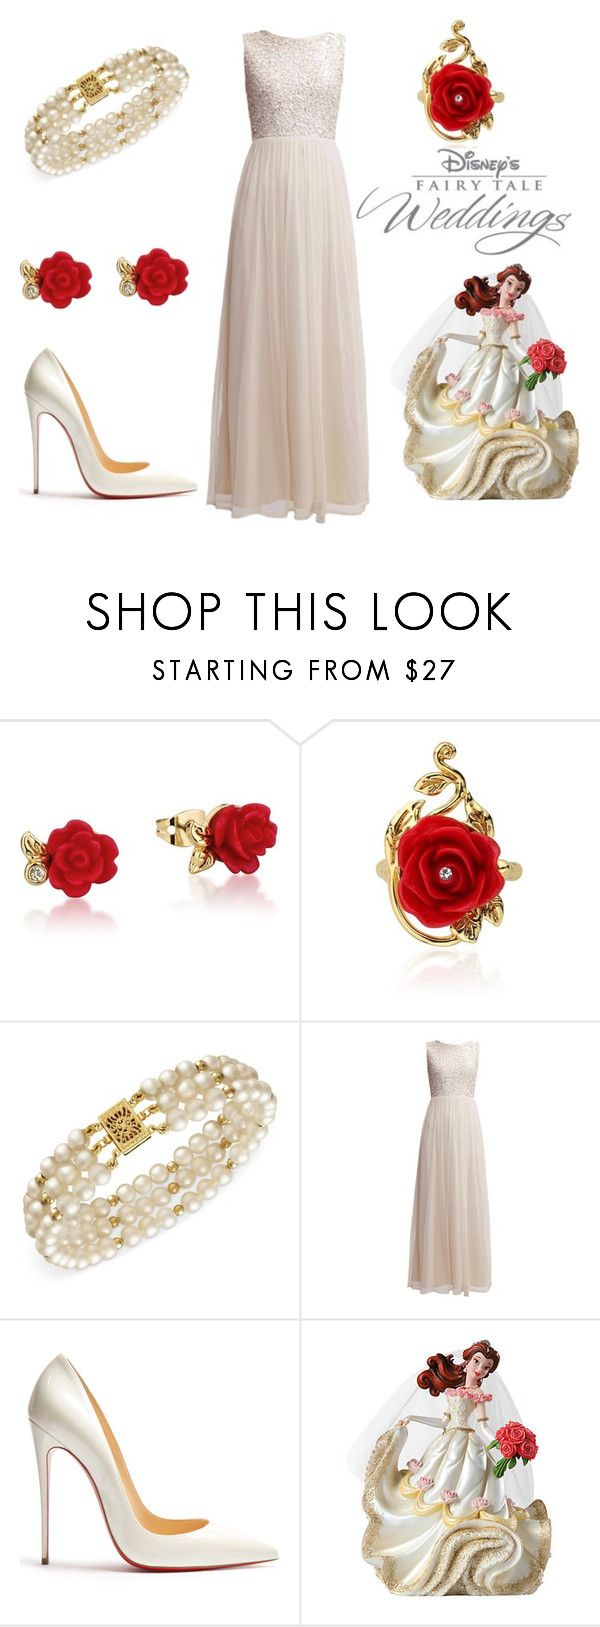 """""""Beauty and the Beast Wedding"""" by sassyladies ❤ liked on Polyvore featuring Disney, Belle de Mer and Christian Louboutin"""